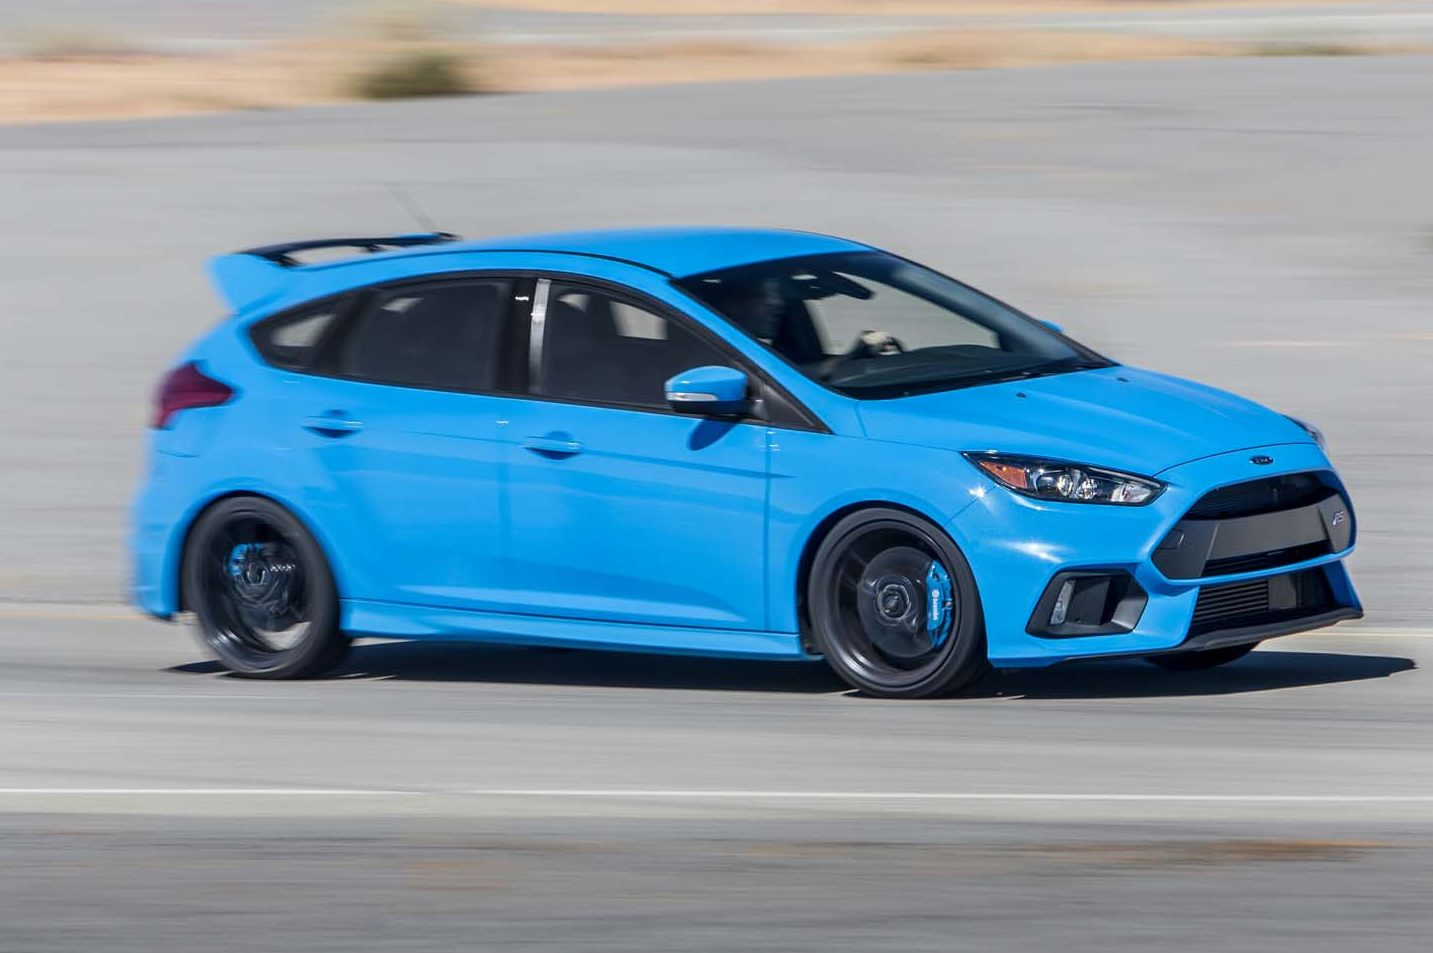 focus frd rs copy price shot vs wrx fcs at screen ford sti auto